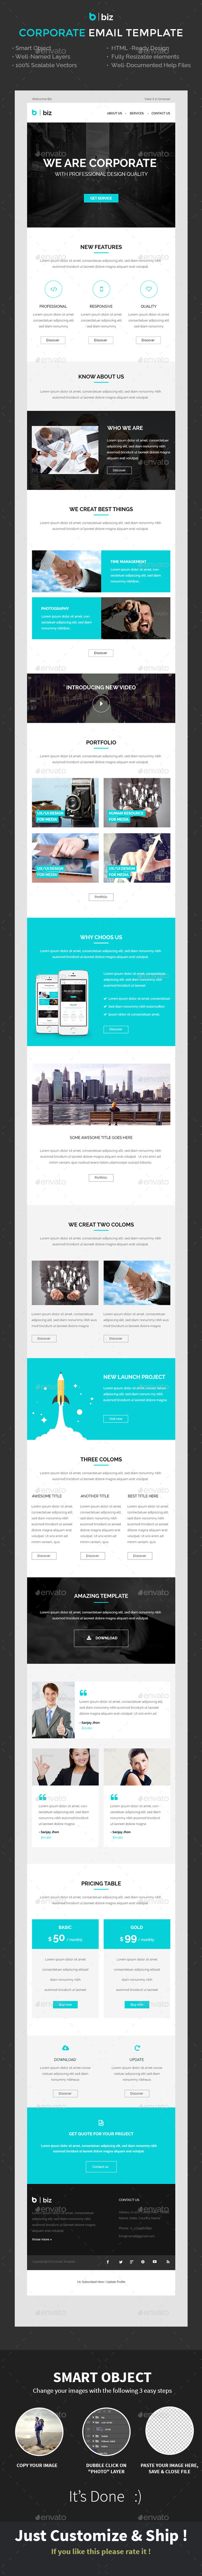 biz - Corporate e-Mail Template PSD - E-newsletters Web Elements